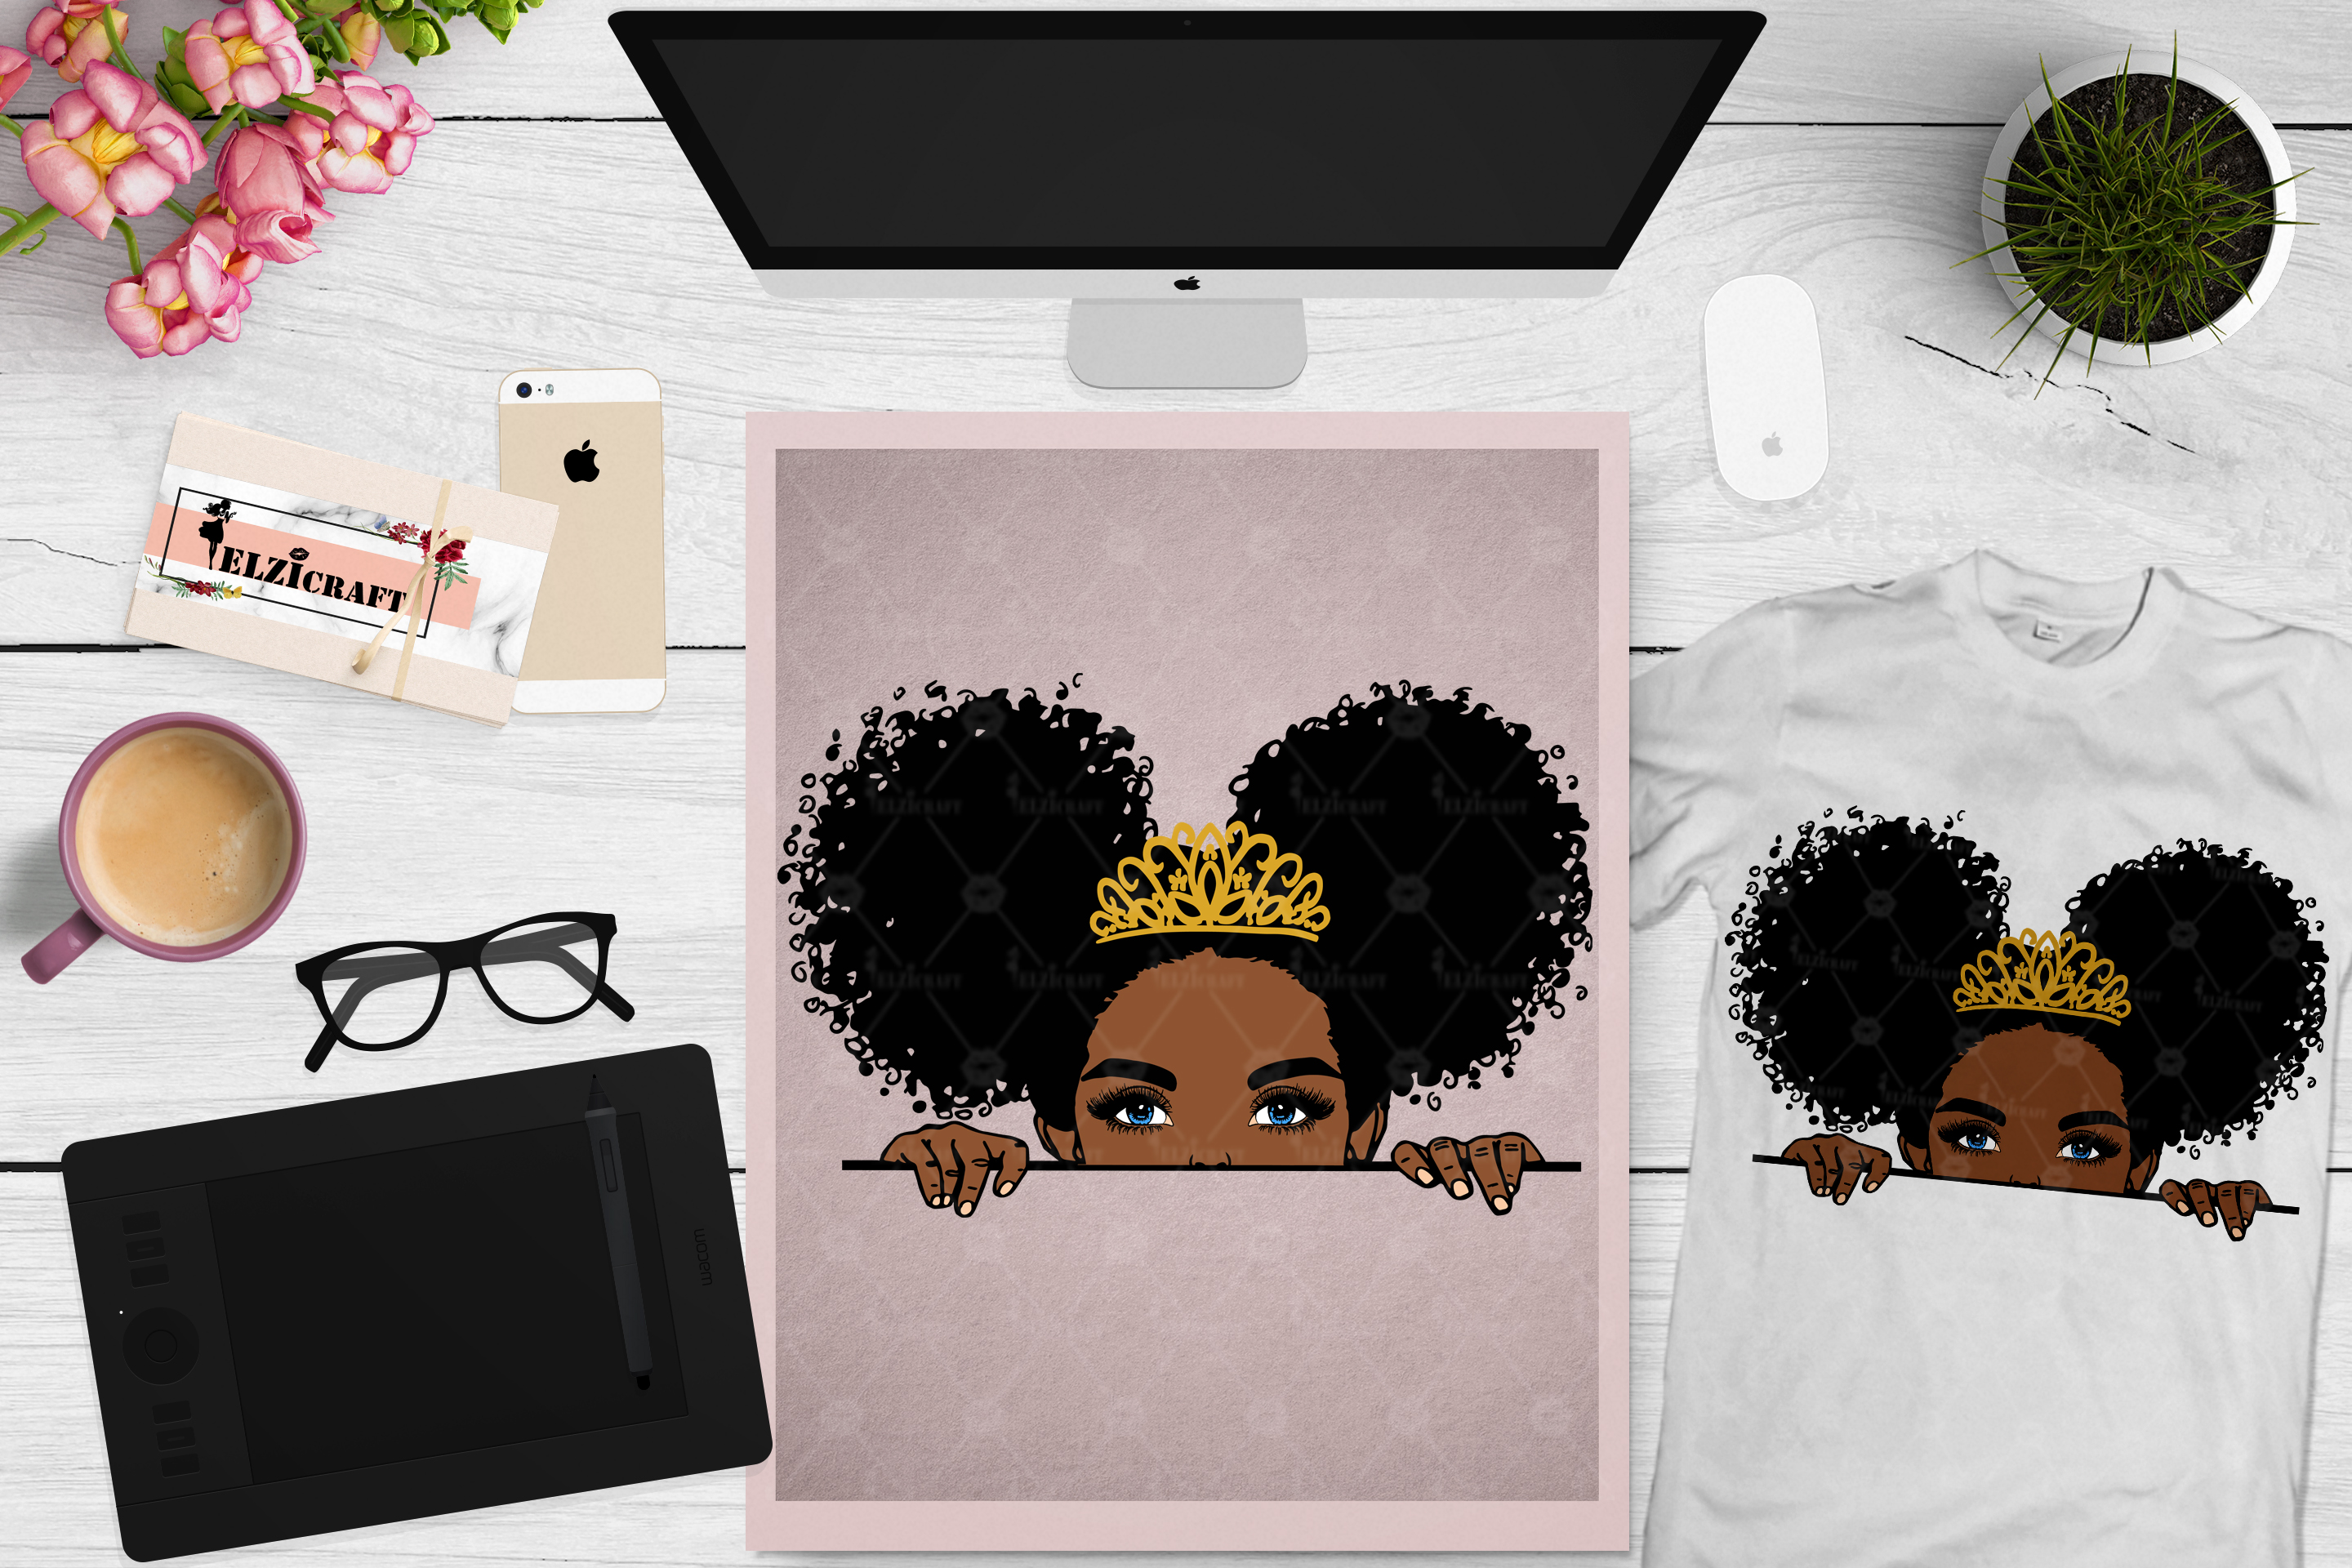 Download Free Peek A Boo Peeking Cute Afro Girl Graphic By Elzicraft for Cricut Explore, Silhouette and other cutting machines.